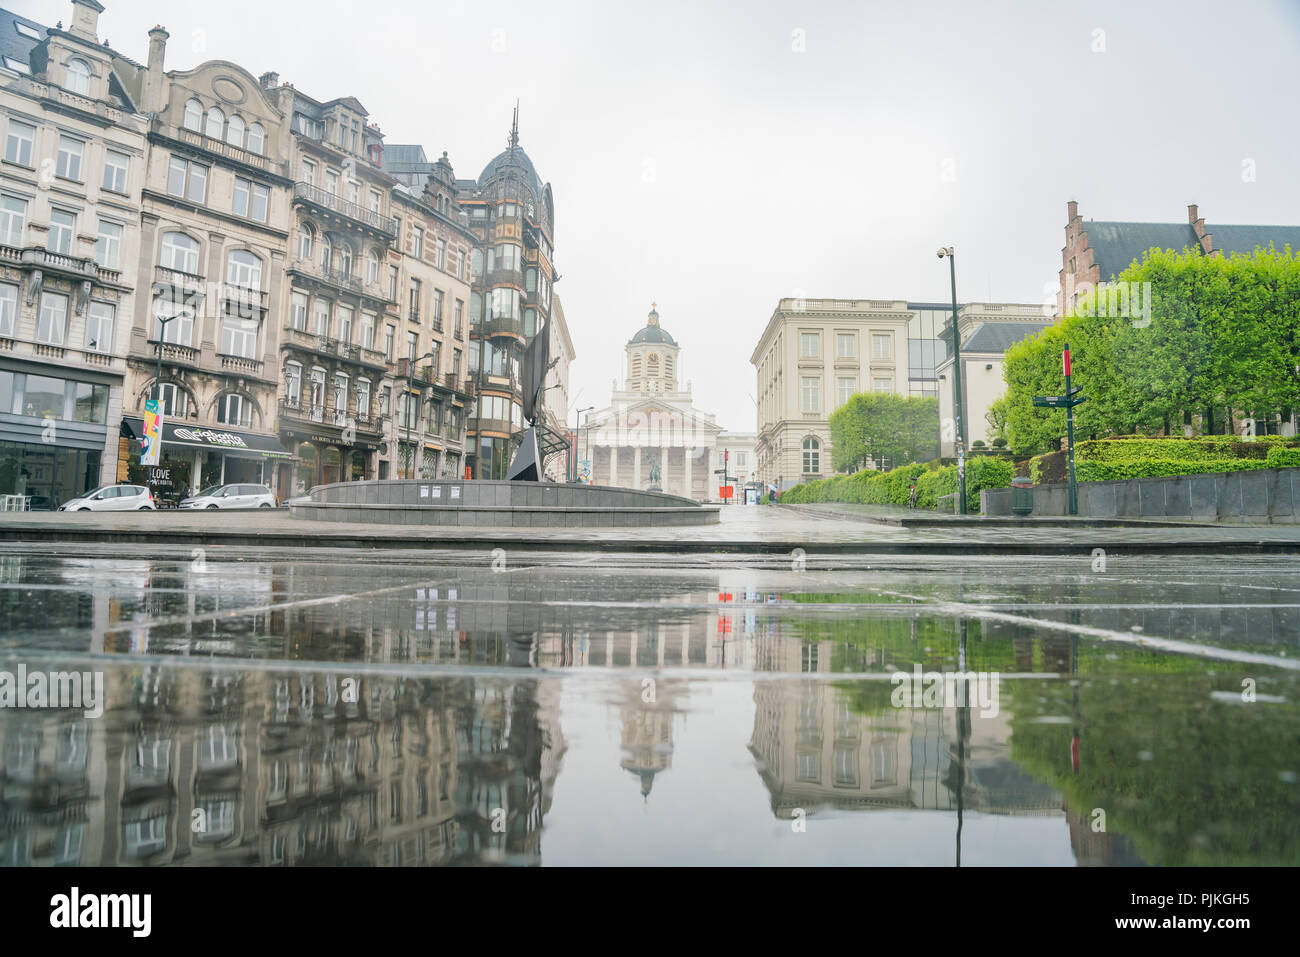 Brussels, APR 29: The famous Whirling Ear art statue in a rainny day on APR 29, 2018 at Brussels, Europe - Stock Image